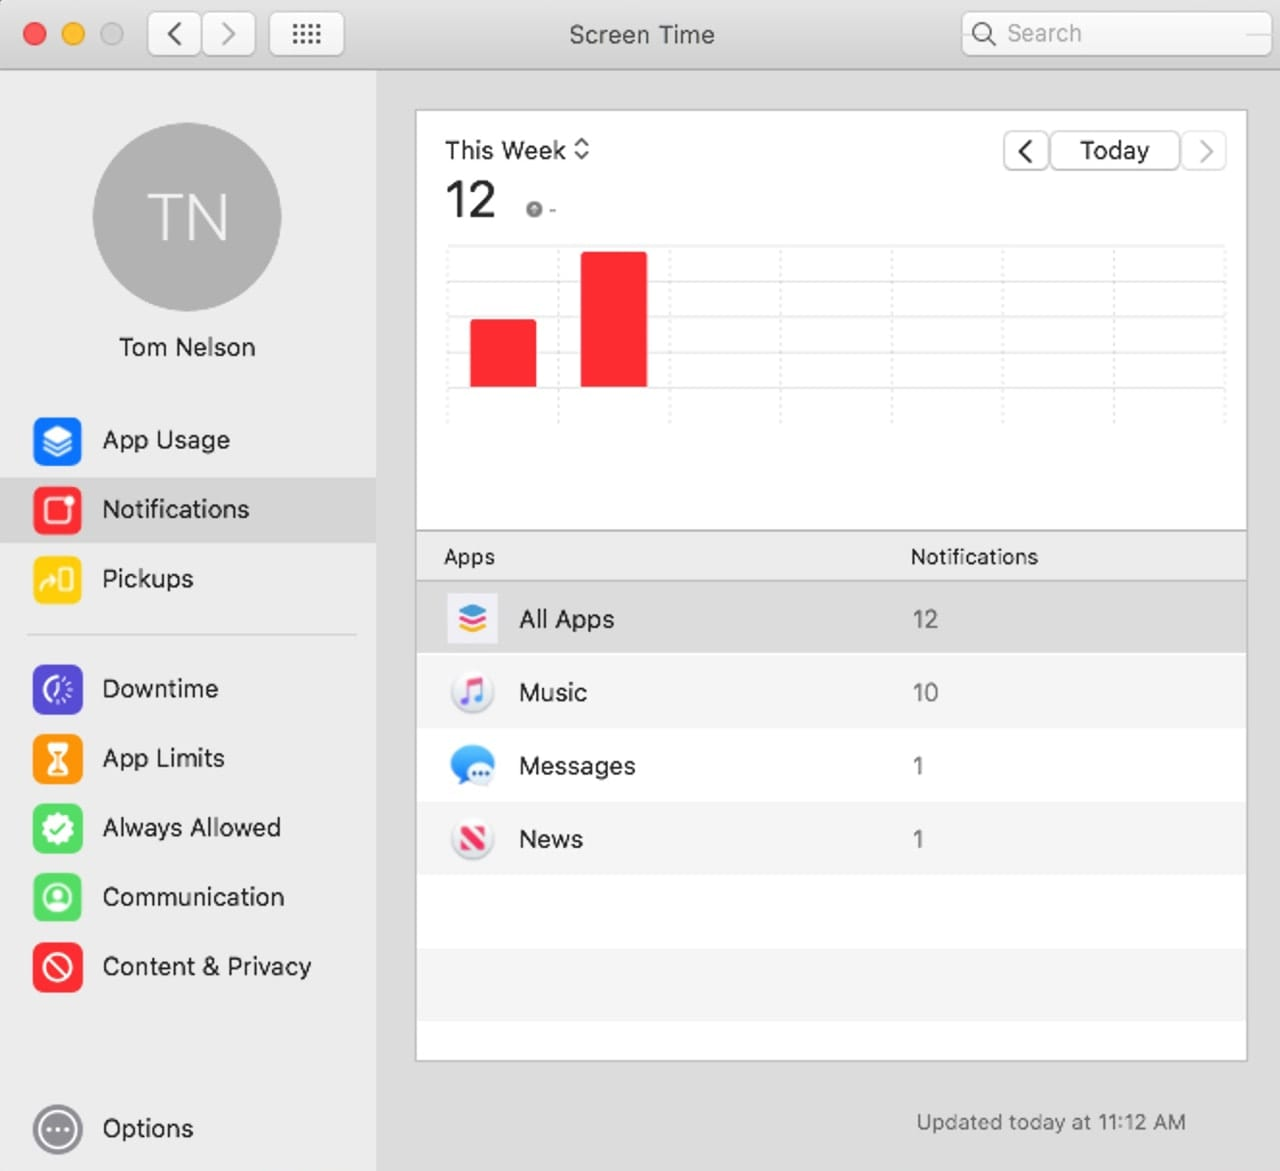 Screen Time Notification graphs.